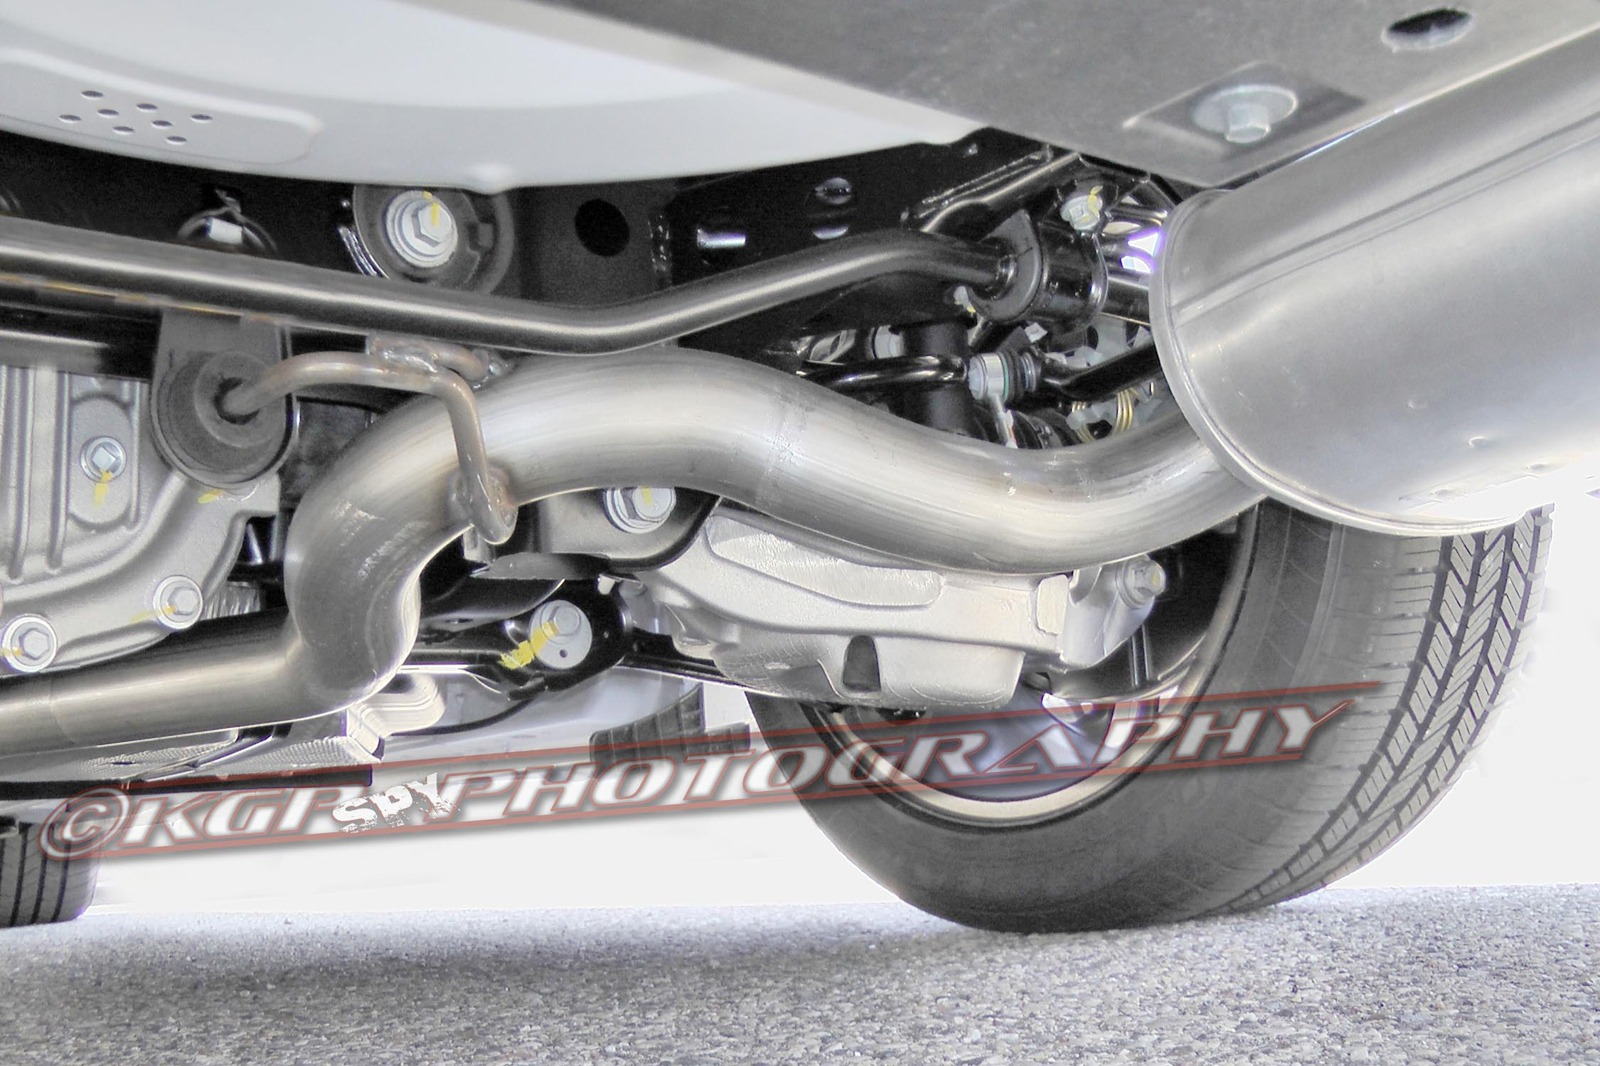 2015 Ford Mustang Spy Photos - IRS (Independent Rear Suspension)